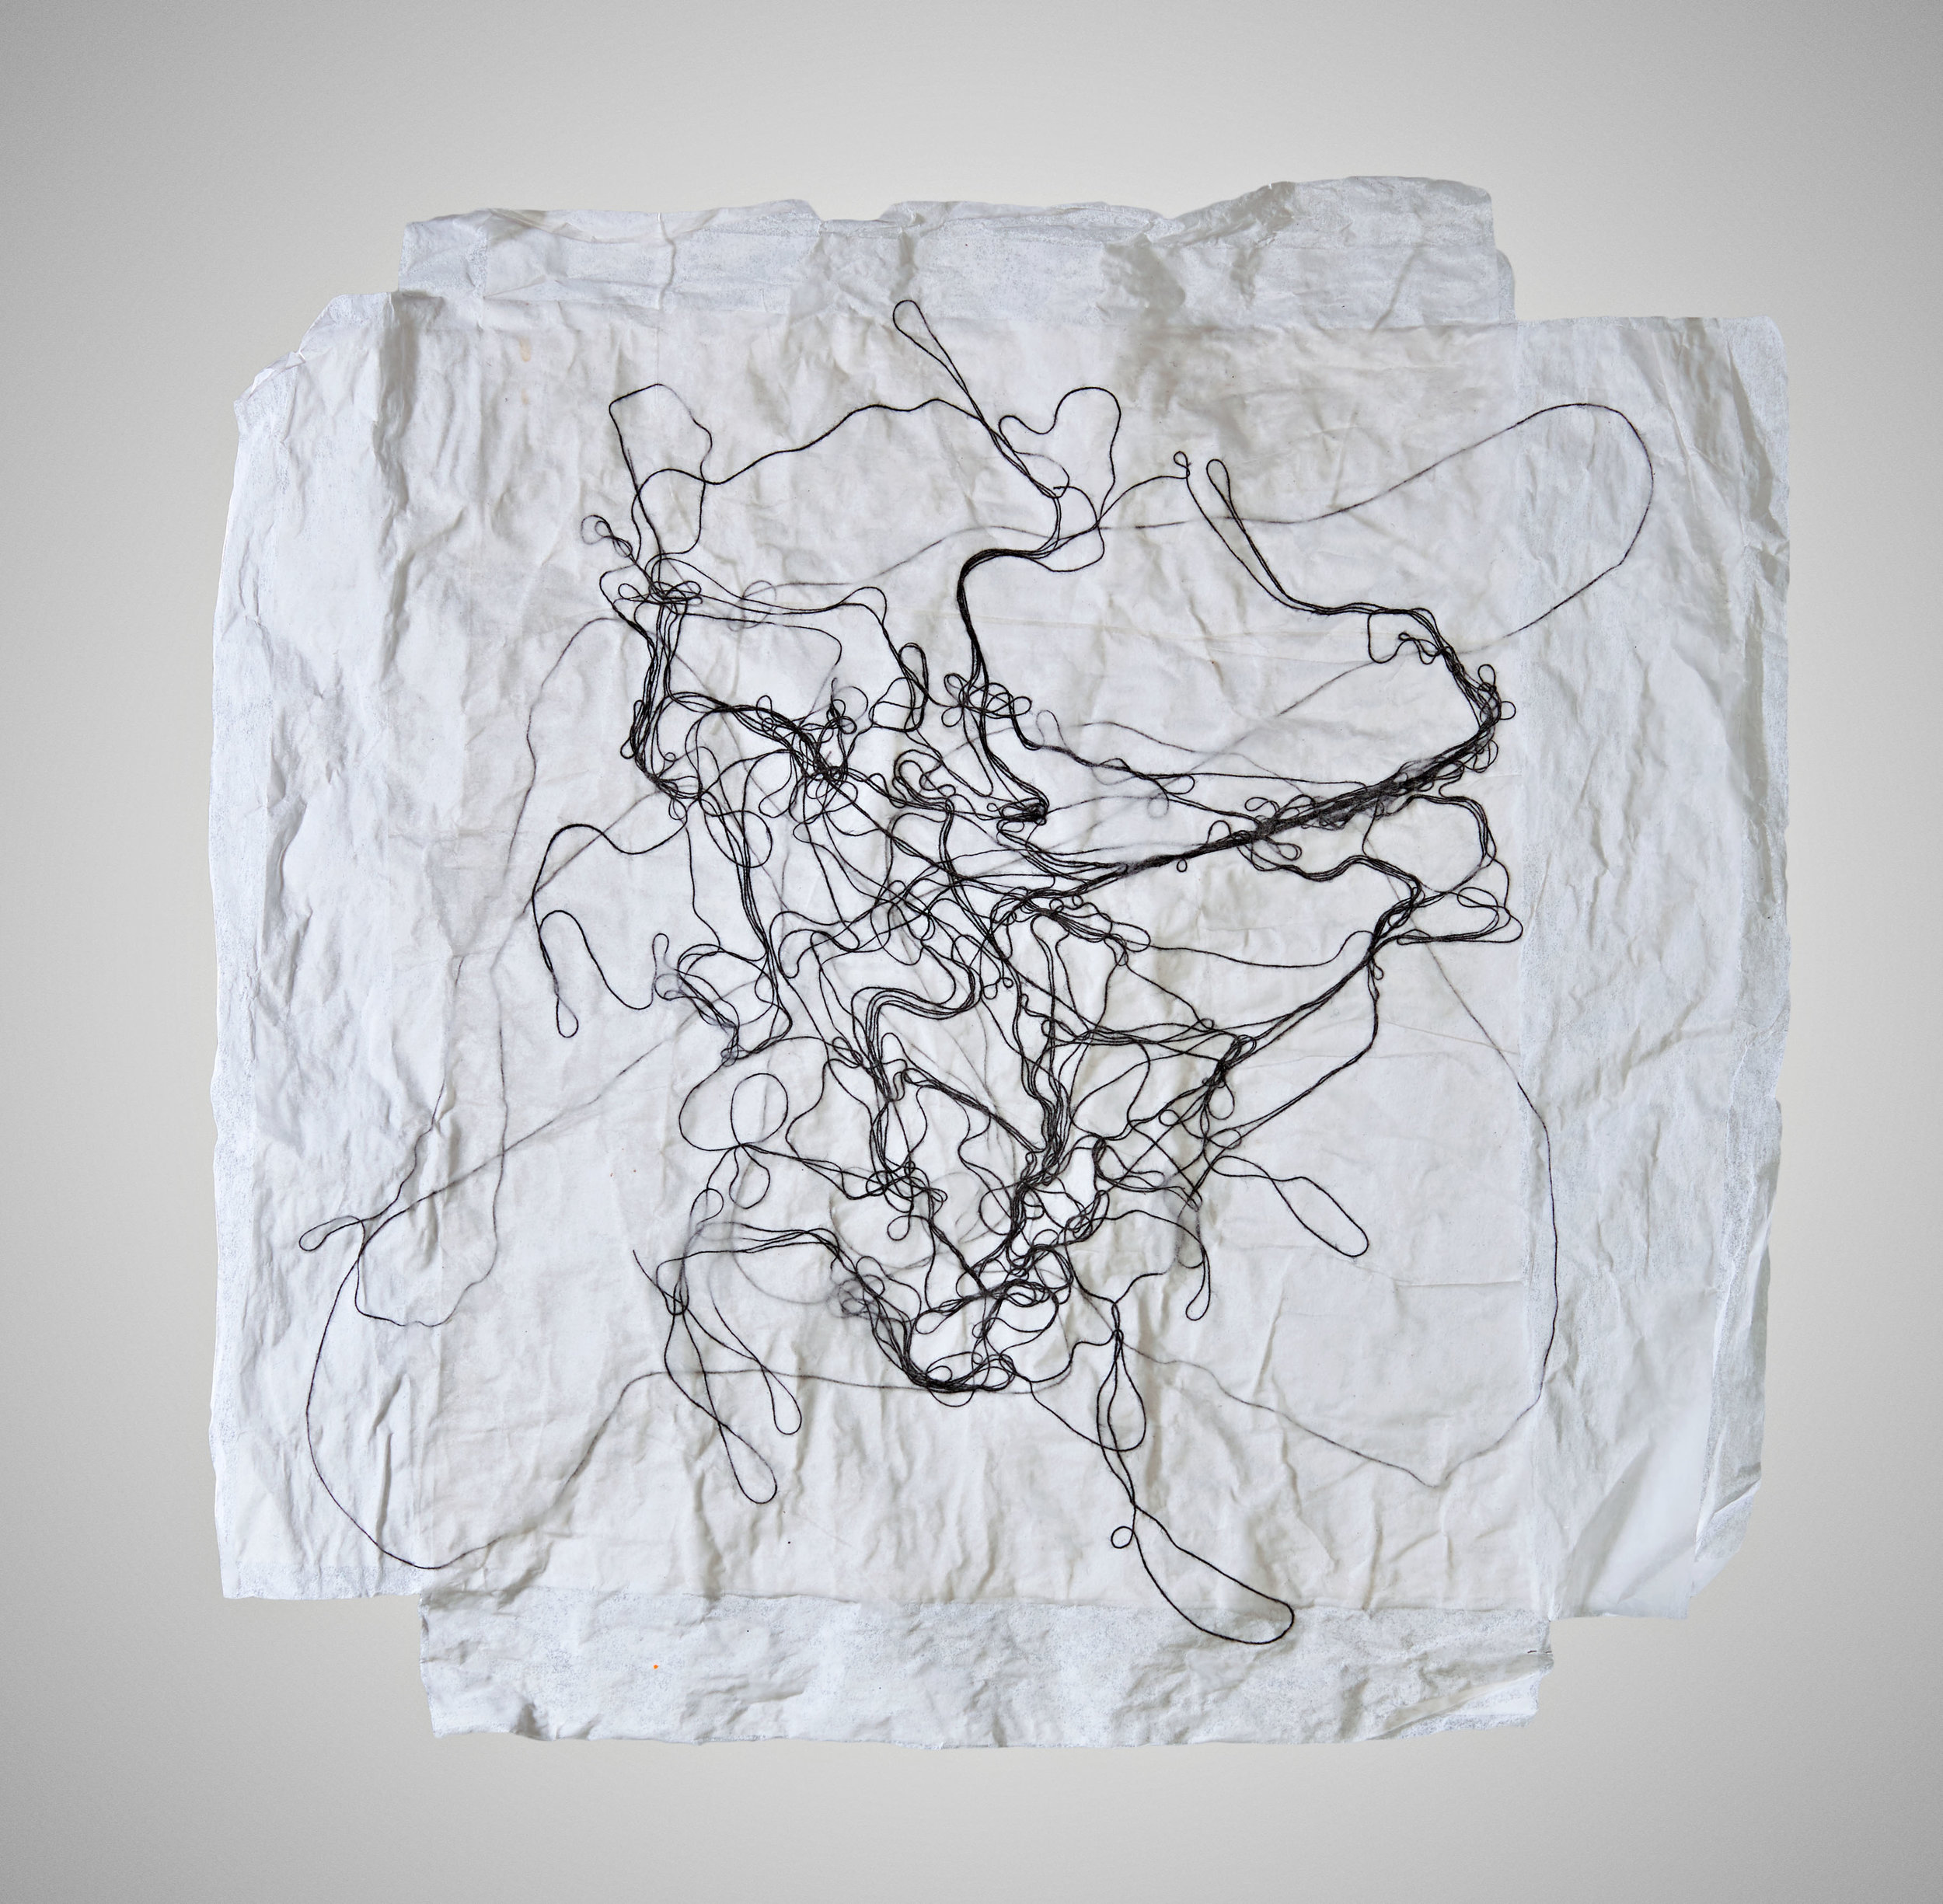 Line Drawing , 2017, thread and paper, 11 x 11 in.